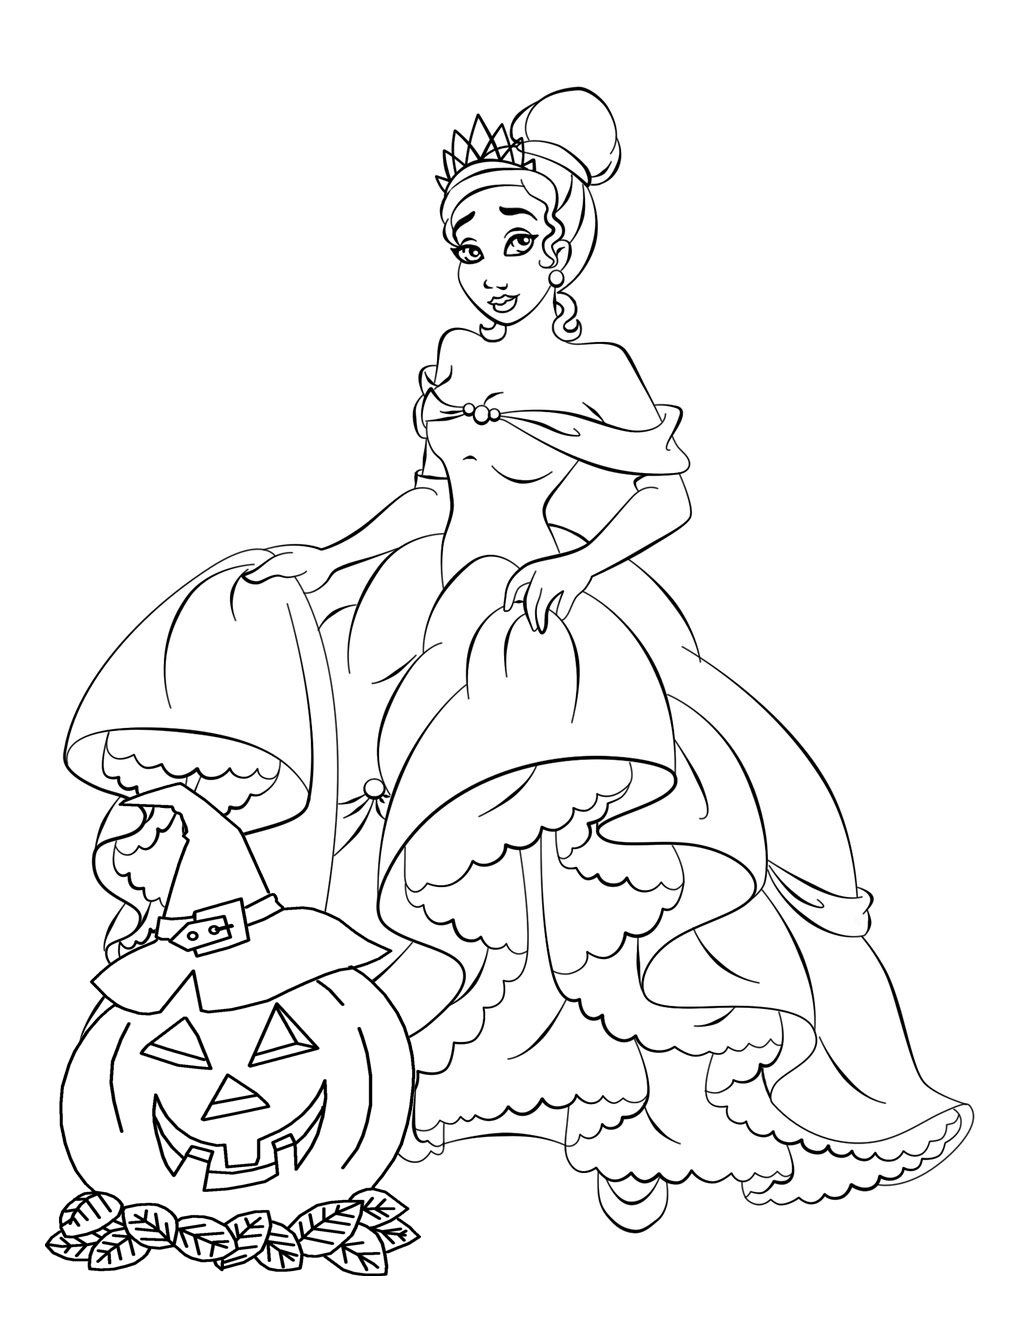 Coloring pages for halloween coloring contest - Disney Princess Free Disney Halloween Coloring Pages Disney